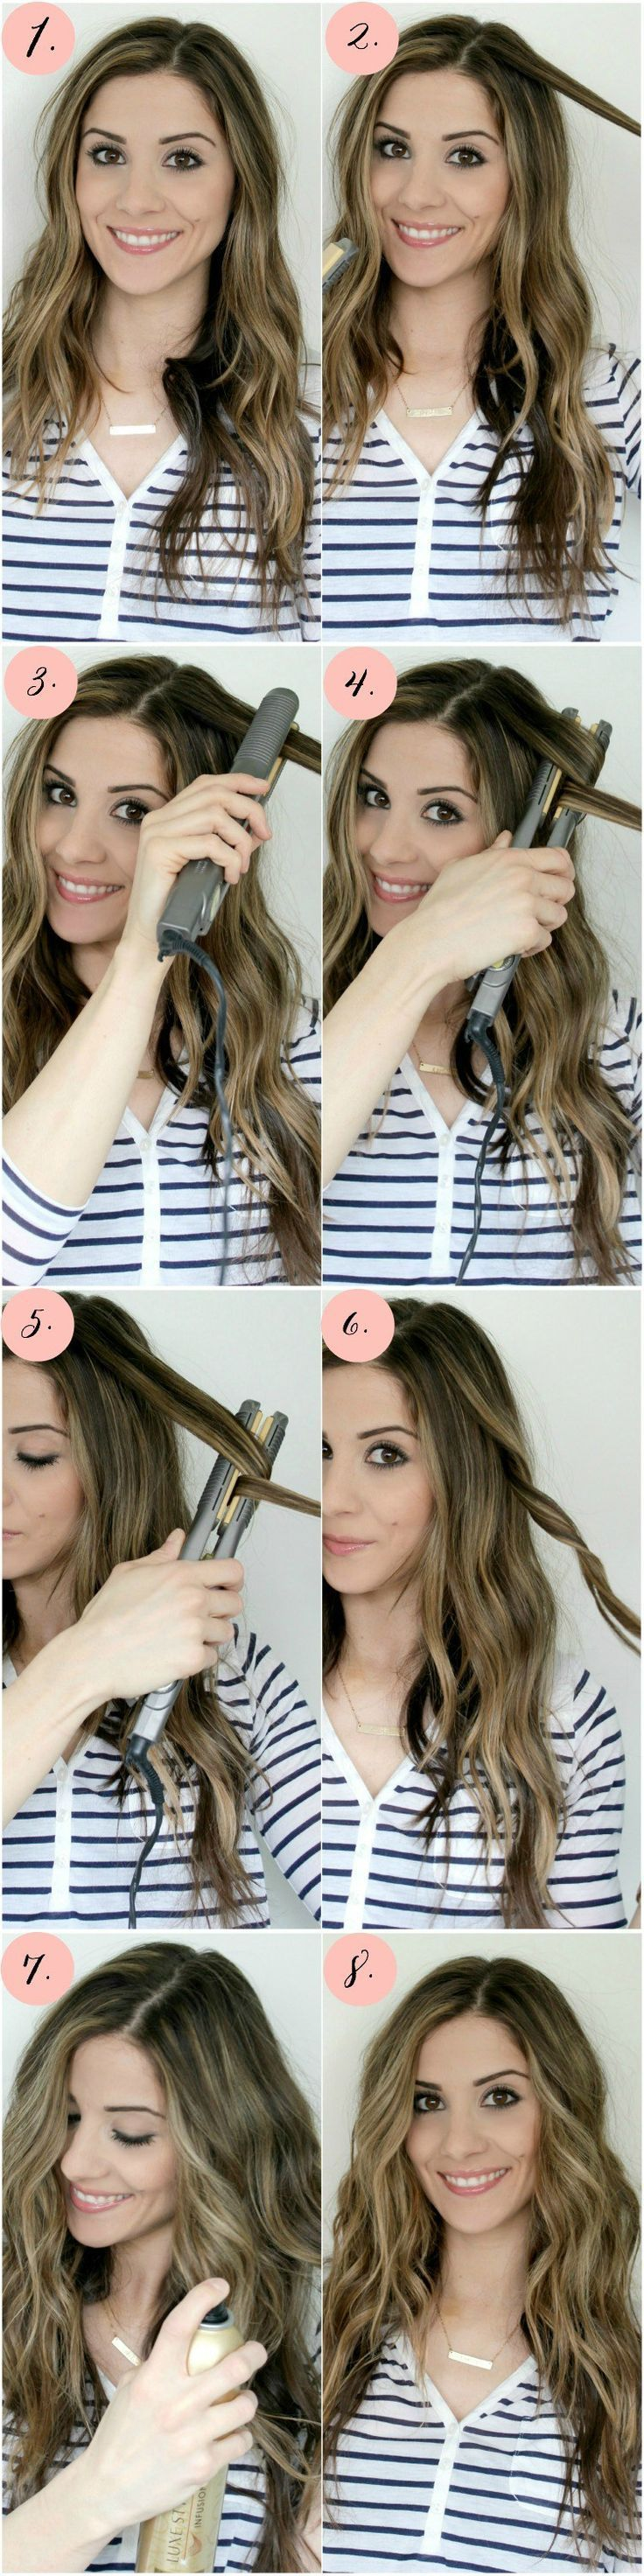 Best 25 Easy mom hairstyles ideas on Pinterest